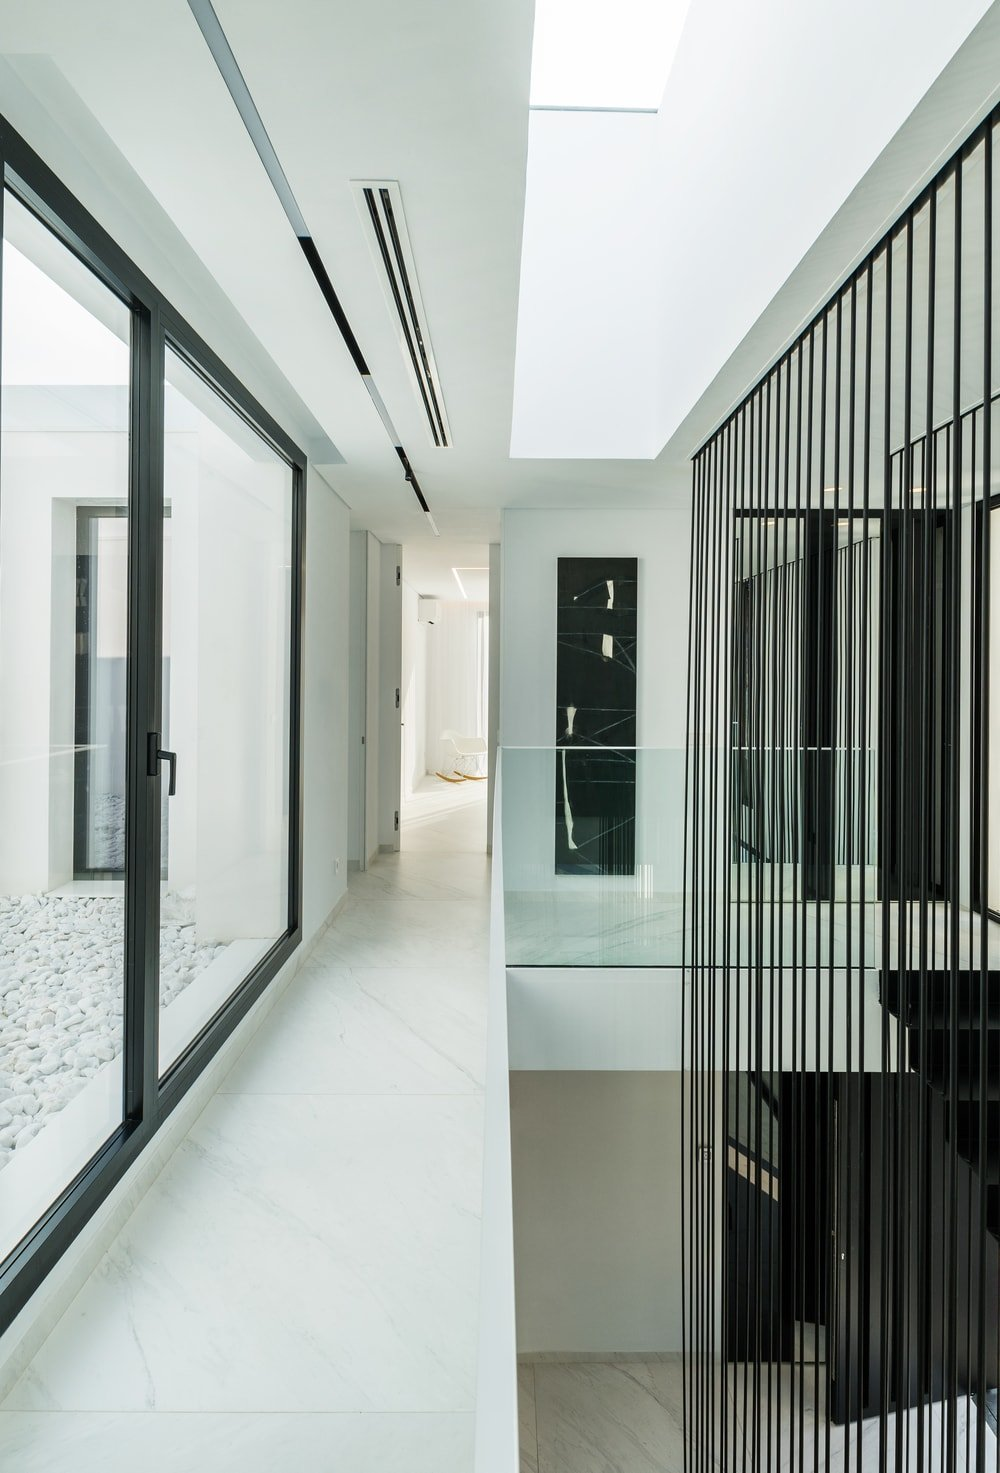 This is the second-floor hallway with a white marble floor and low glass walls on its indoor balcony that looks over the foyer and stairs.